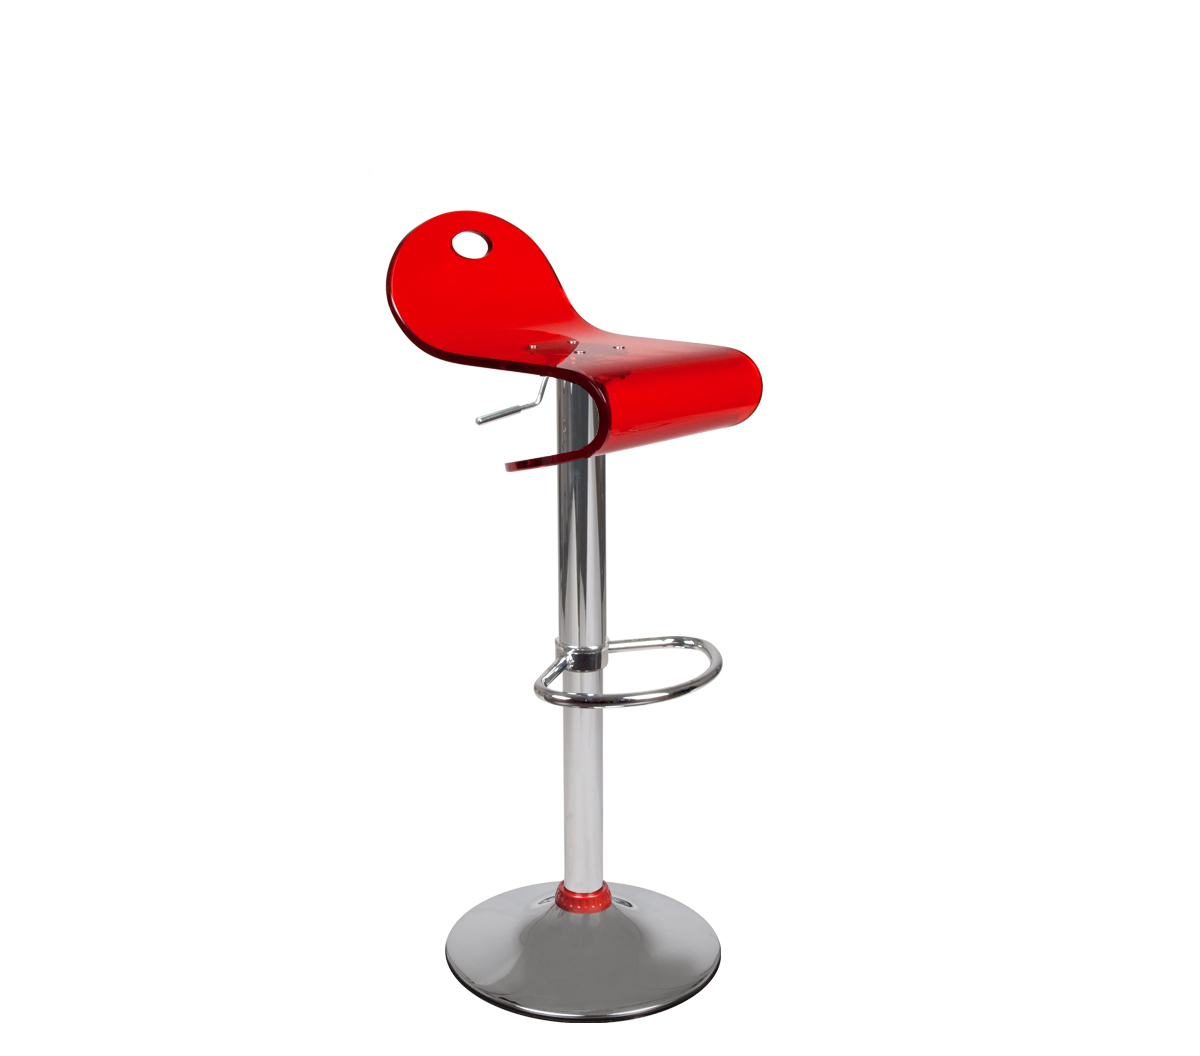 Red bar stool up to you Celeste